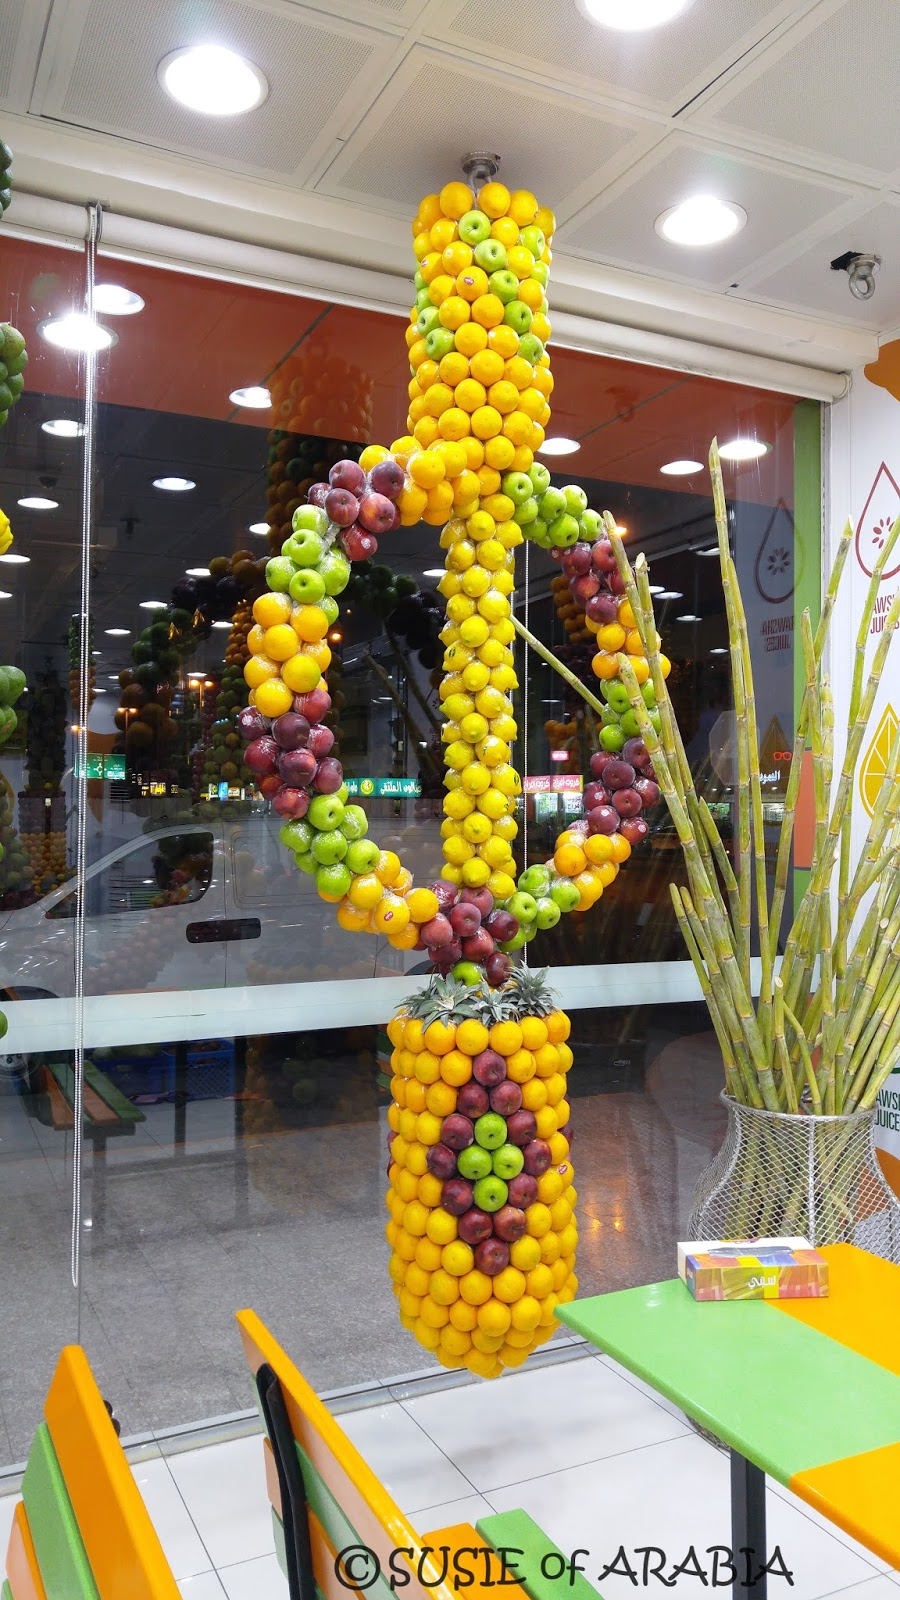 Hundreds of fresh fruits are formed together into a variety of shapes and geometric designs to create a delightful and appealing display